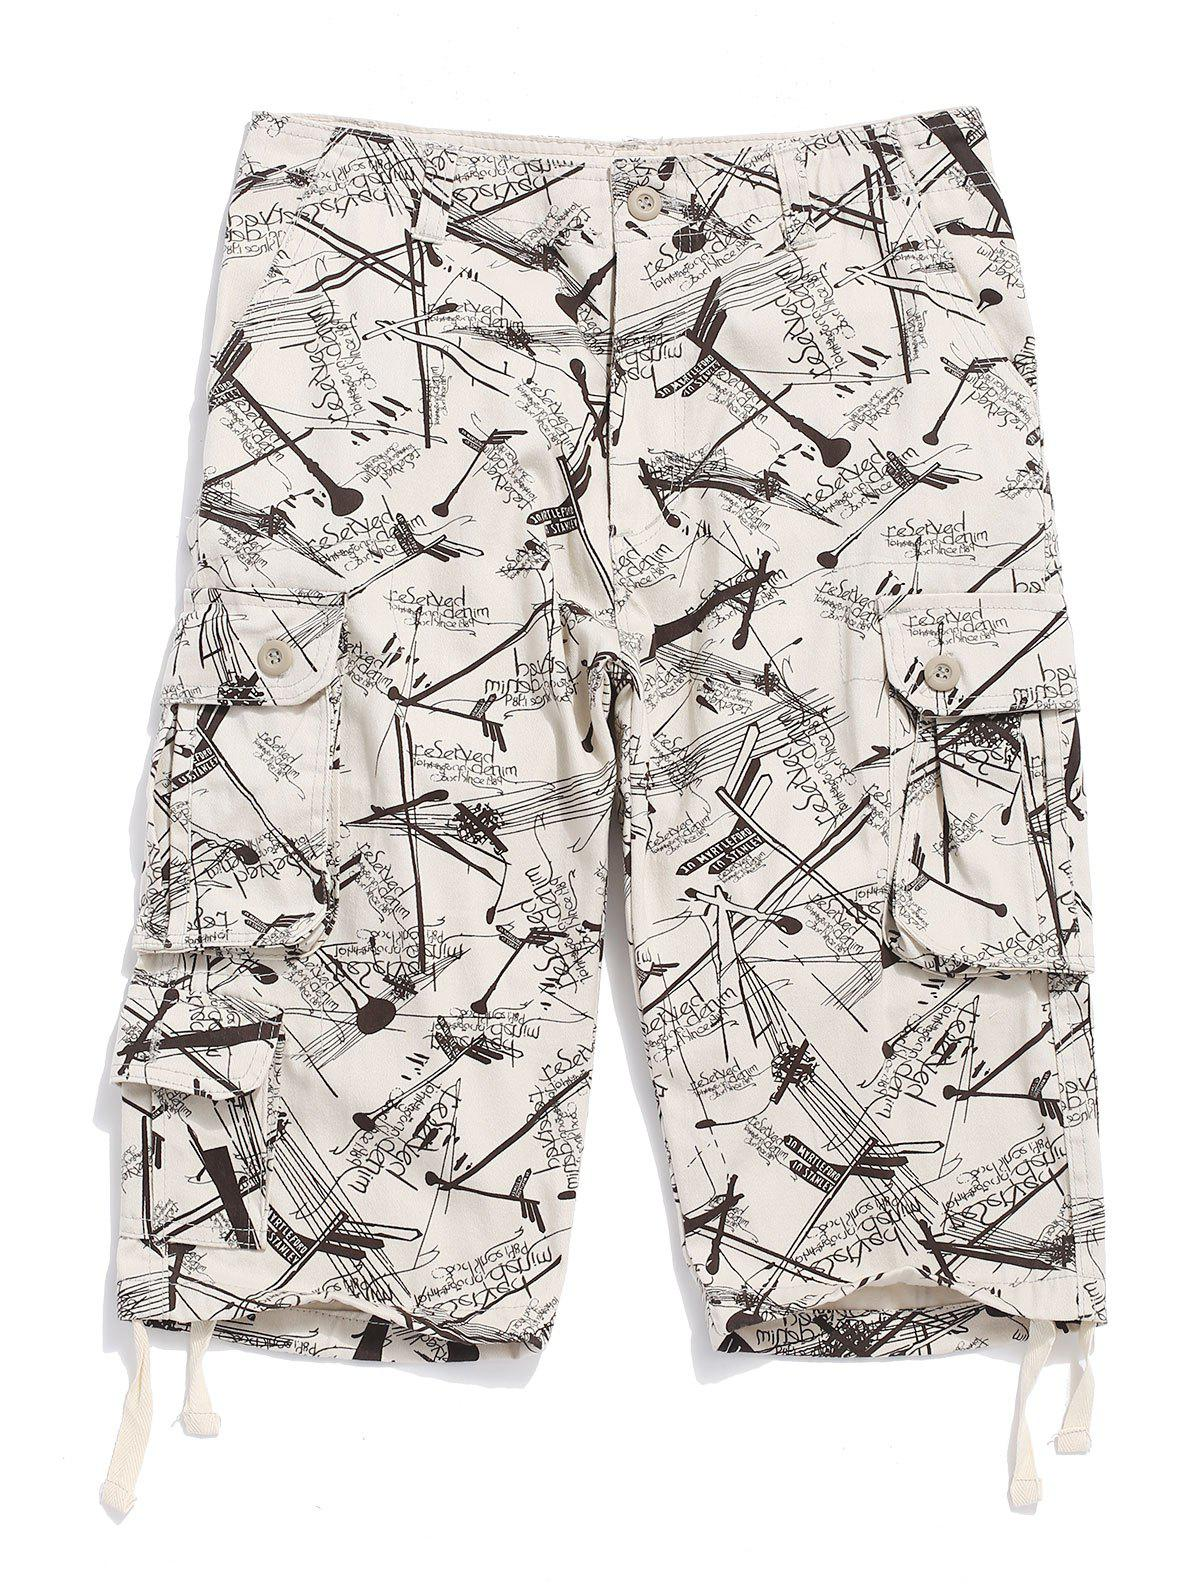 Fancy Graphic Printed Casual Cargo Shorts